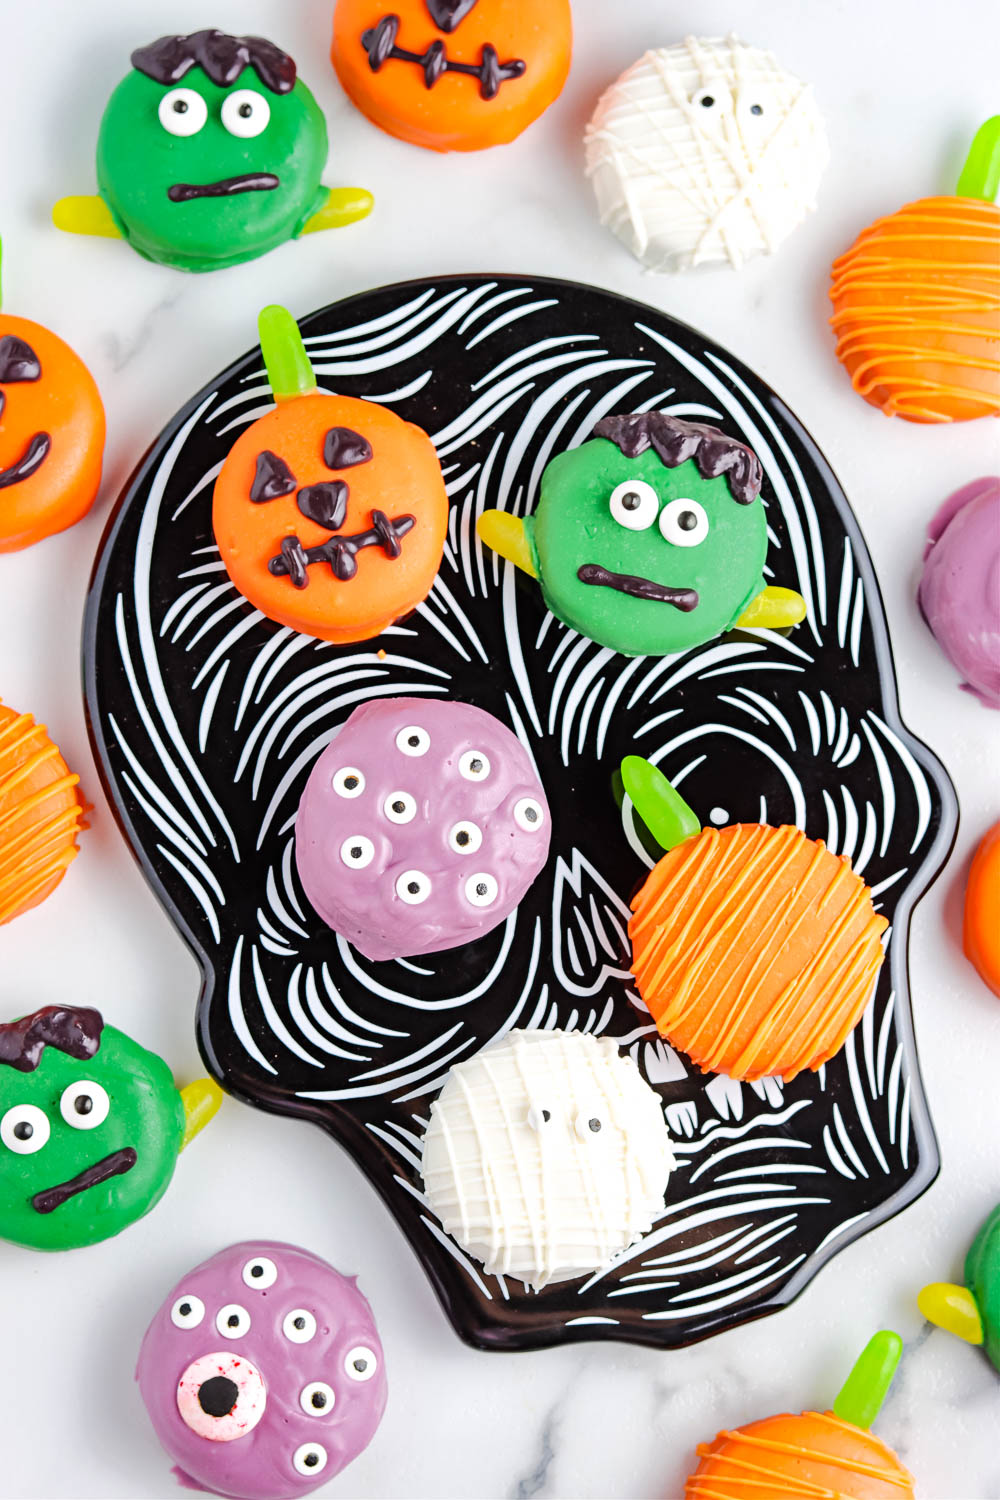 The finished Chocolate Dipped Oreos on a black Halloween platter.